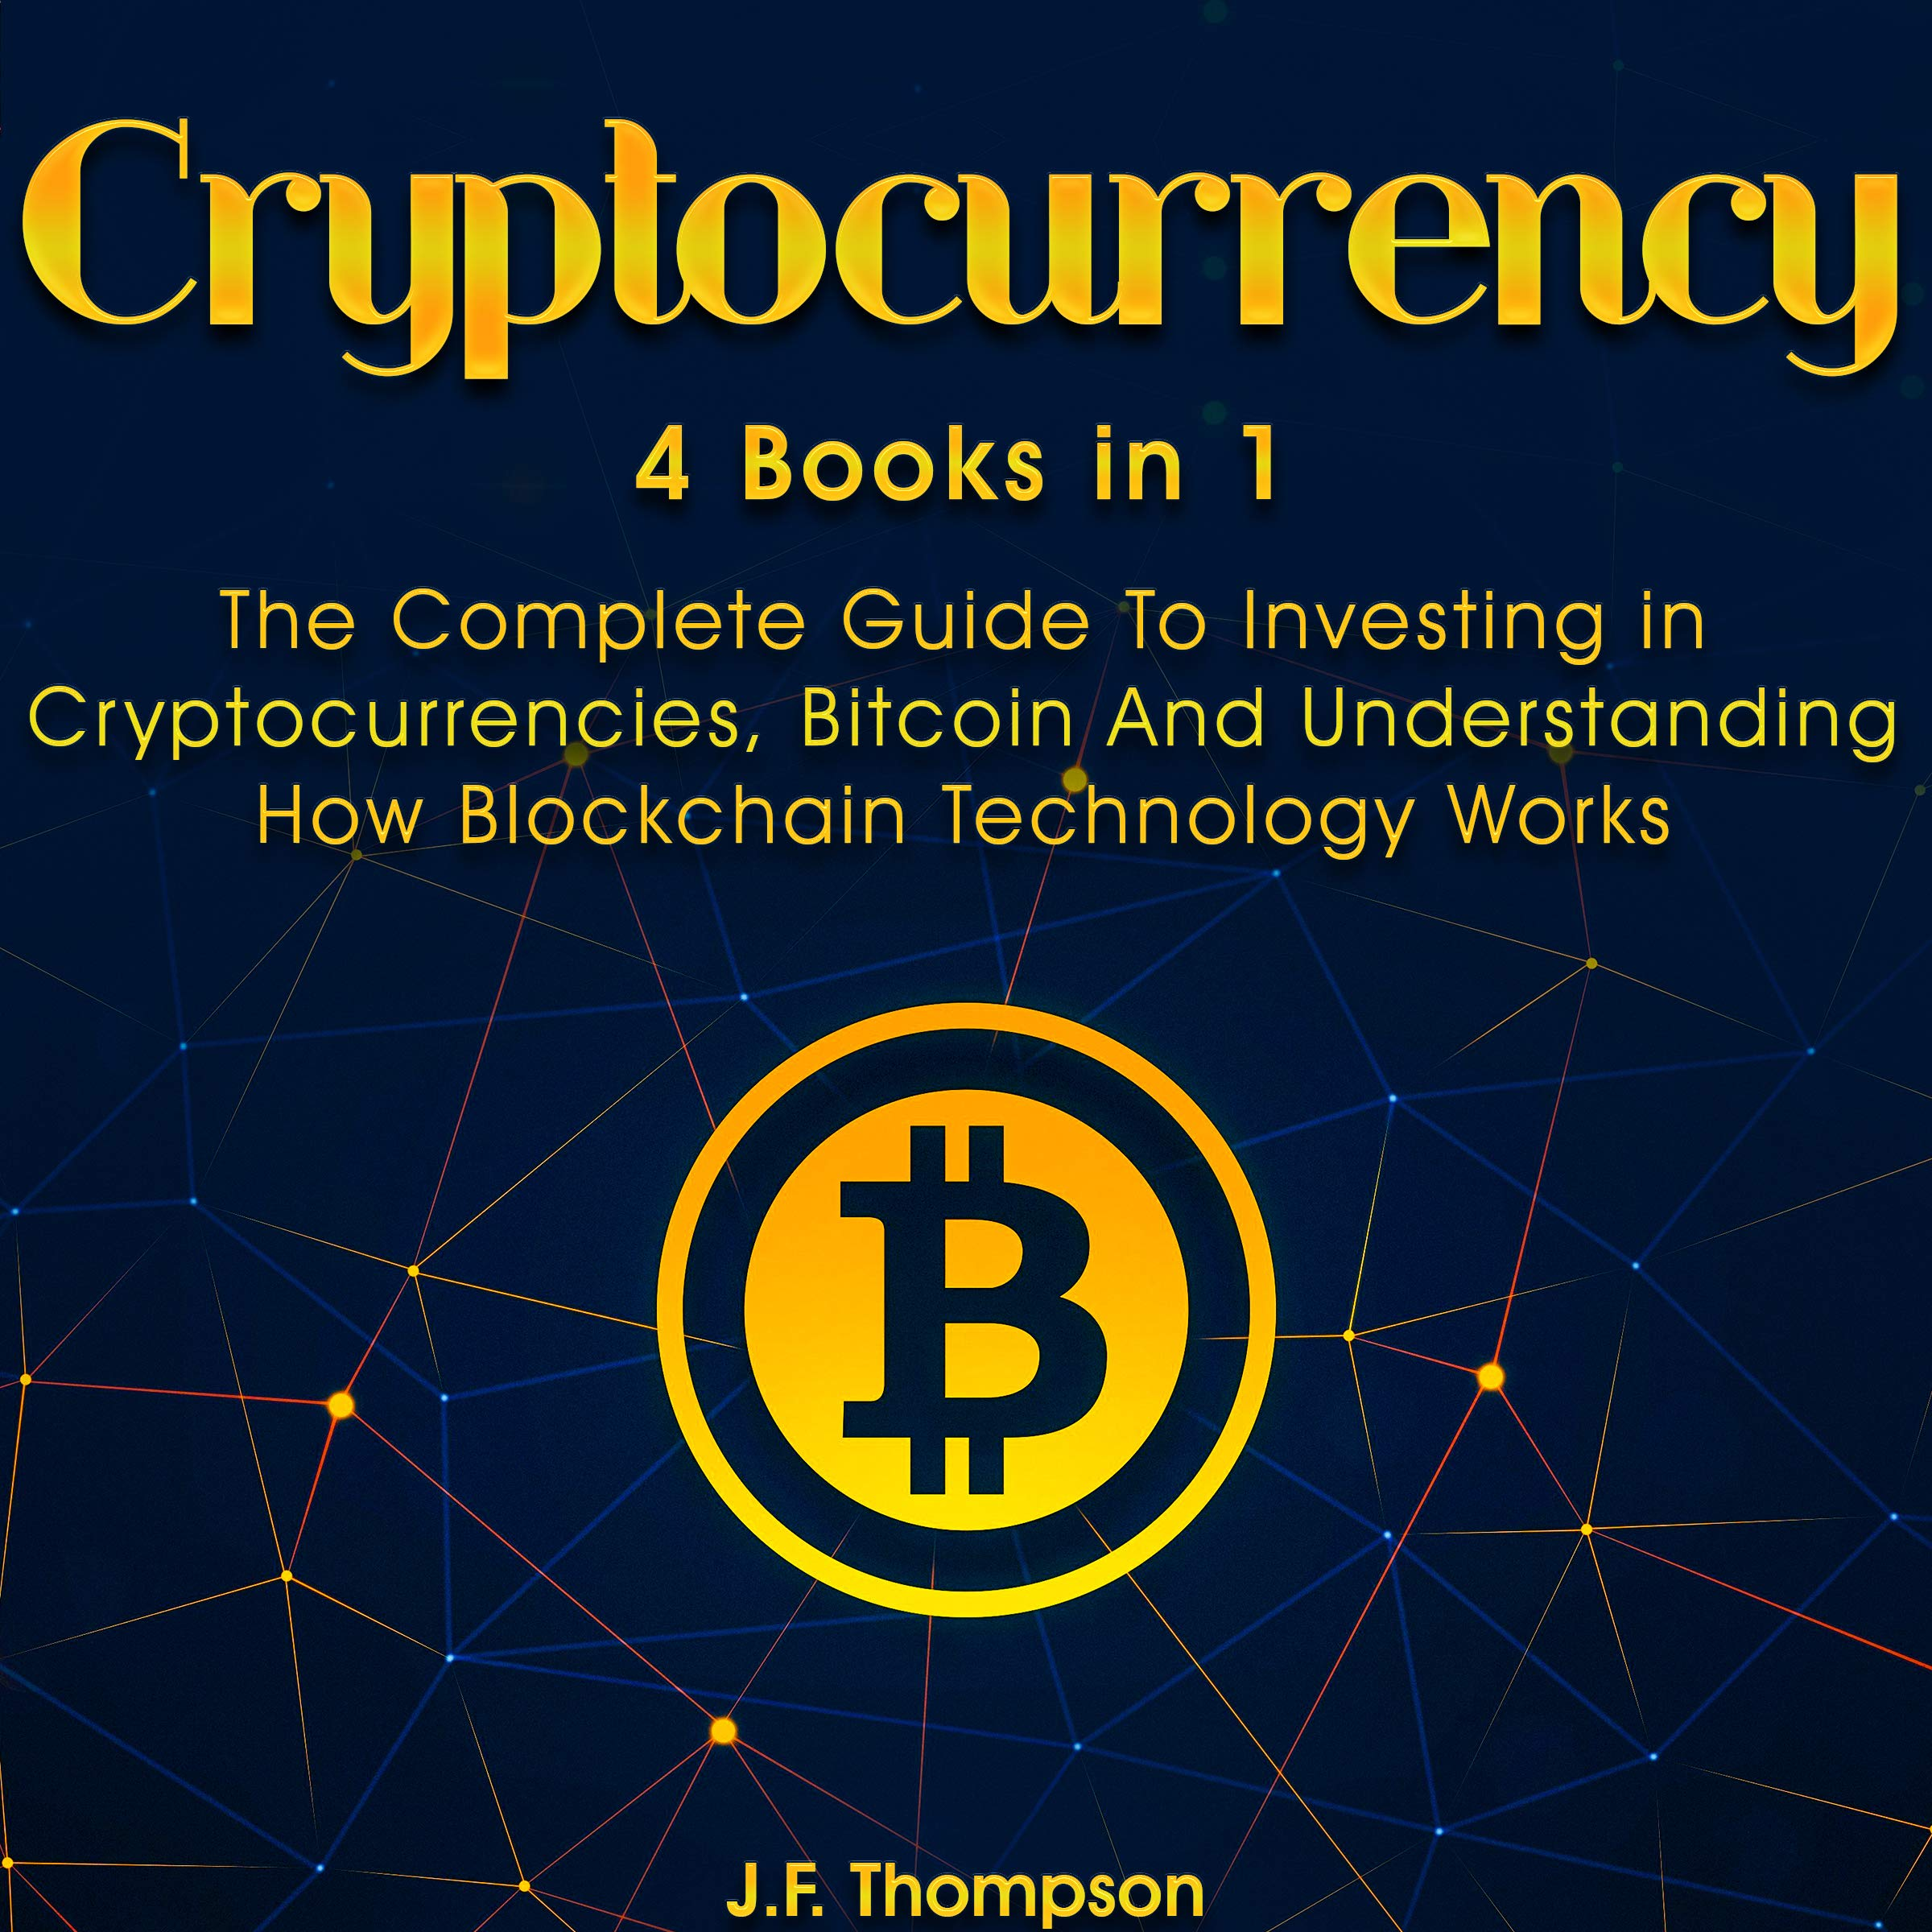 Cryptocurrency: The Complete Guide to Investing in Cryptocurrencies, Bitcoin and Understanding How Blockchain Technology Works